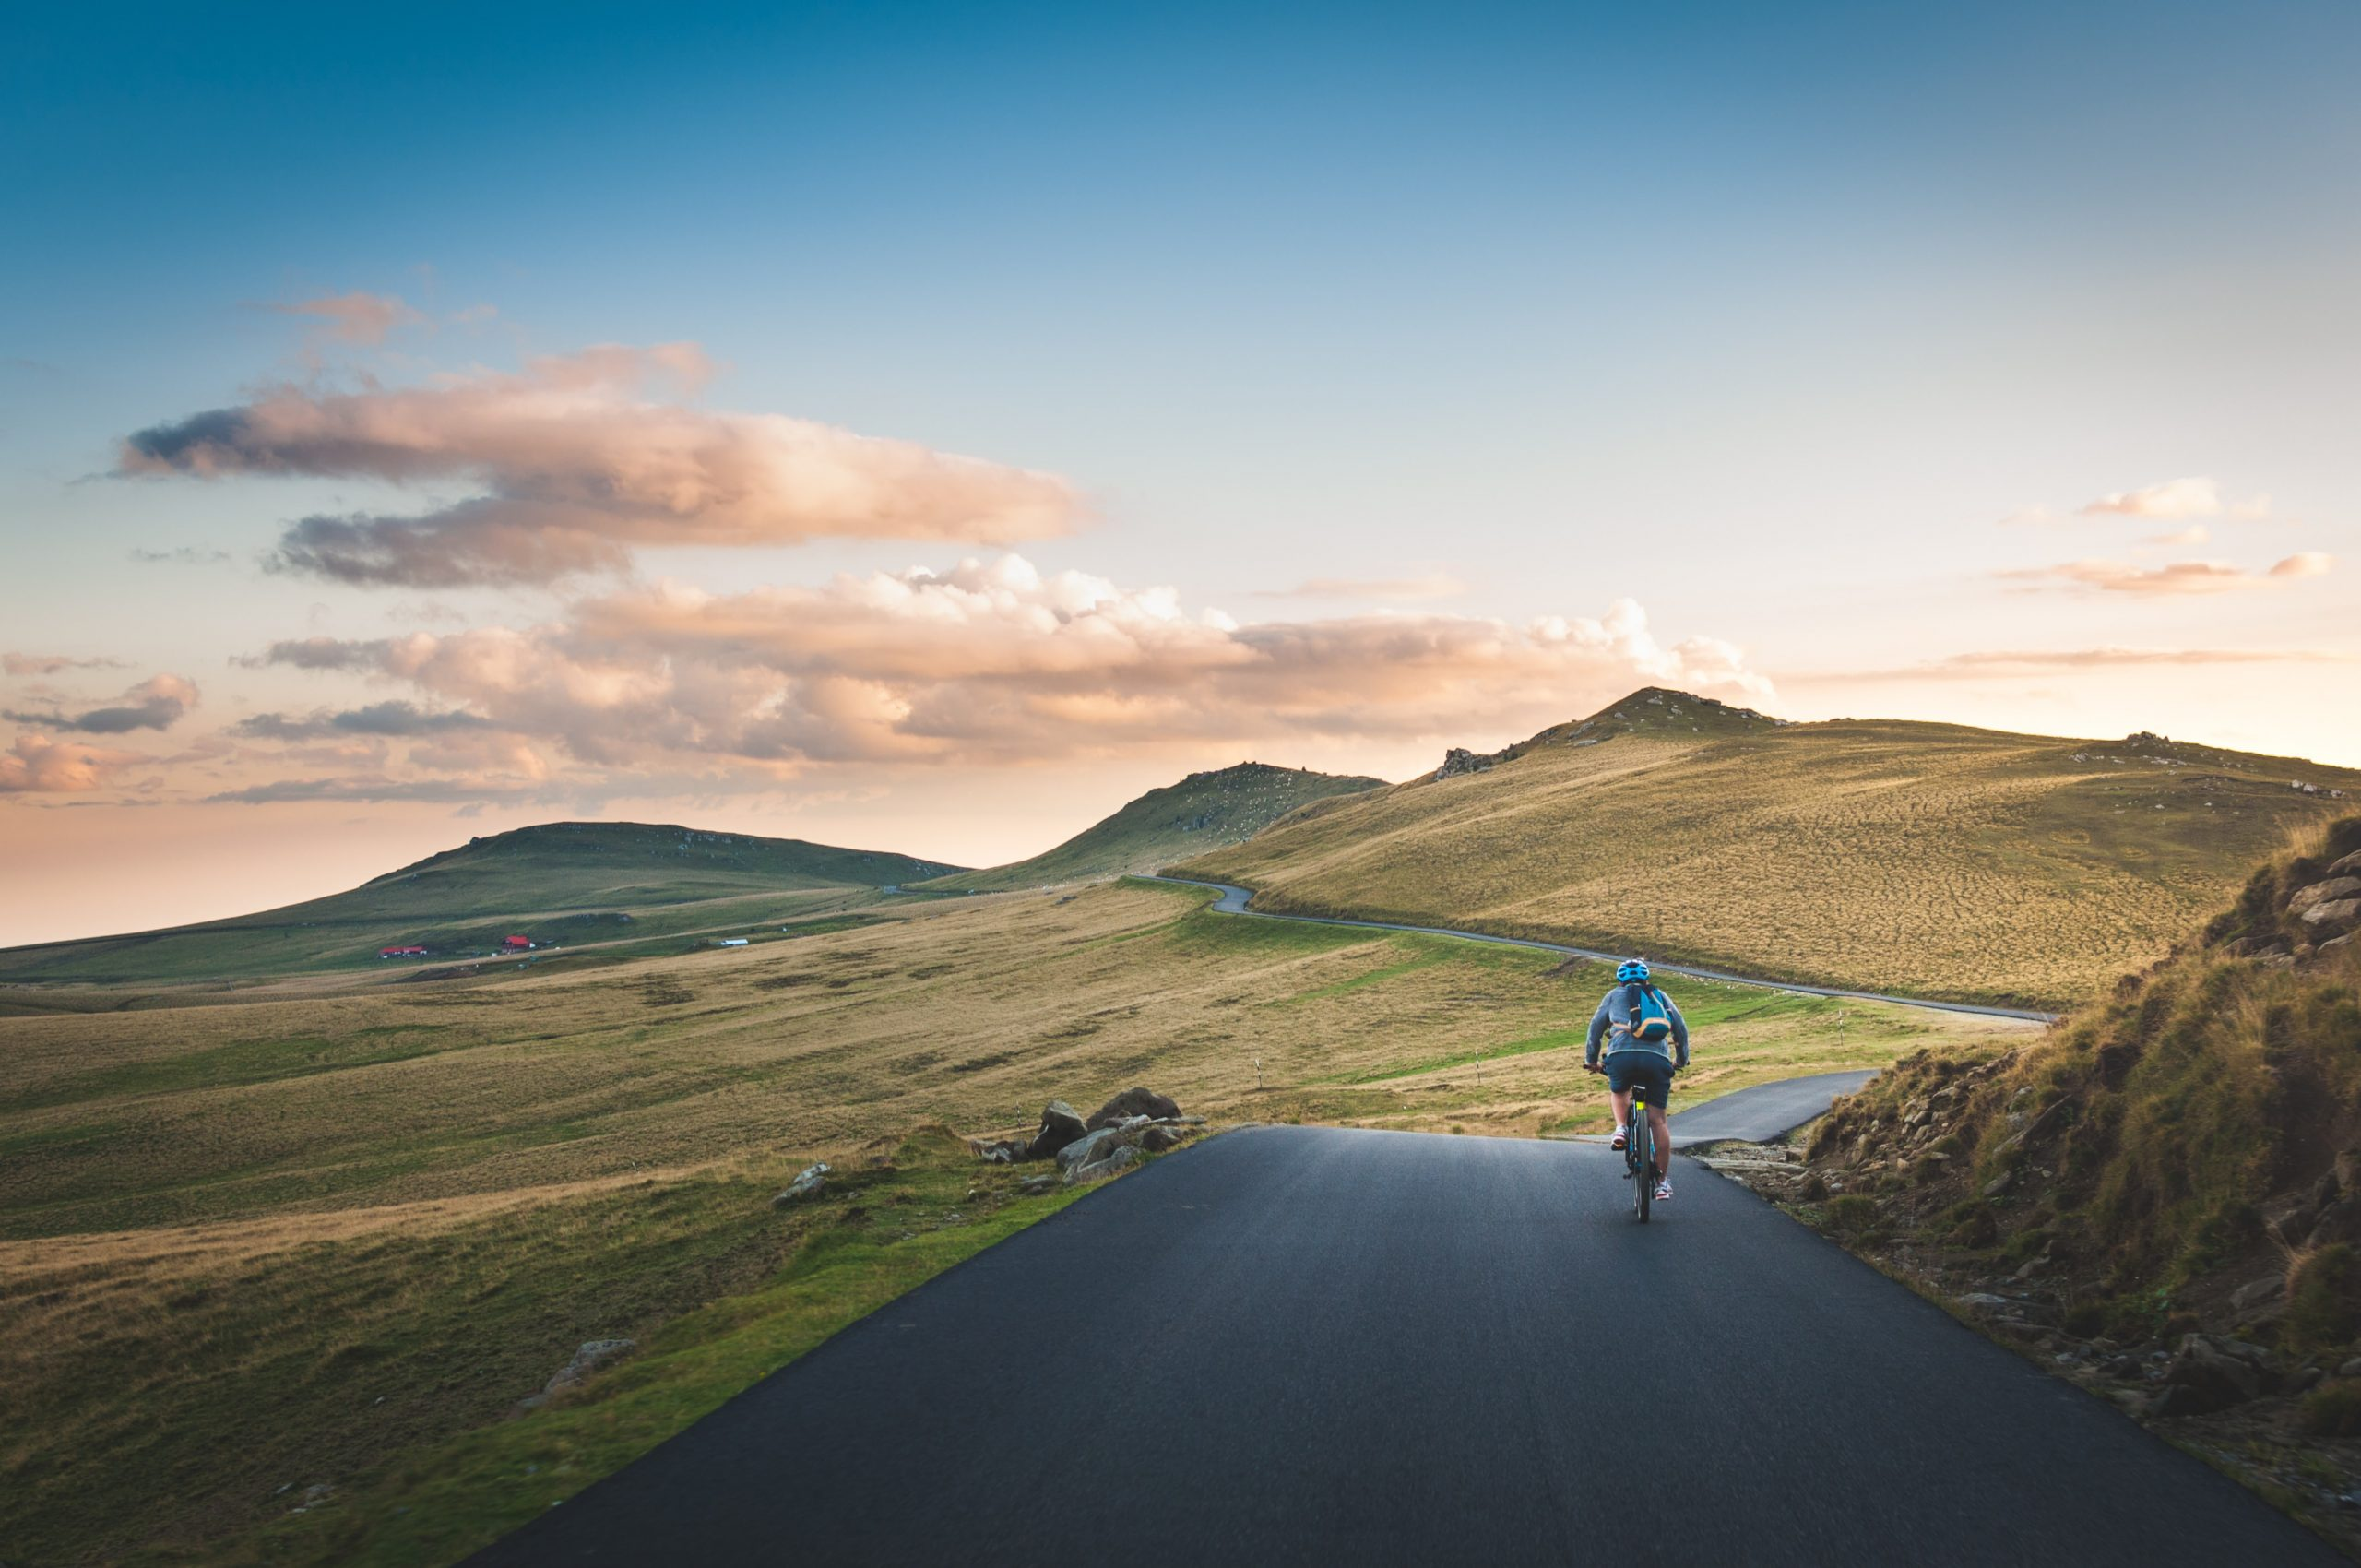 david marcu VfUN94cUy4o unsplash scaled Answers to Common Bicycle Fitness Questions